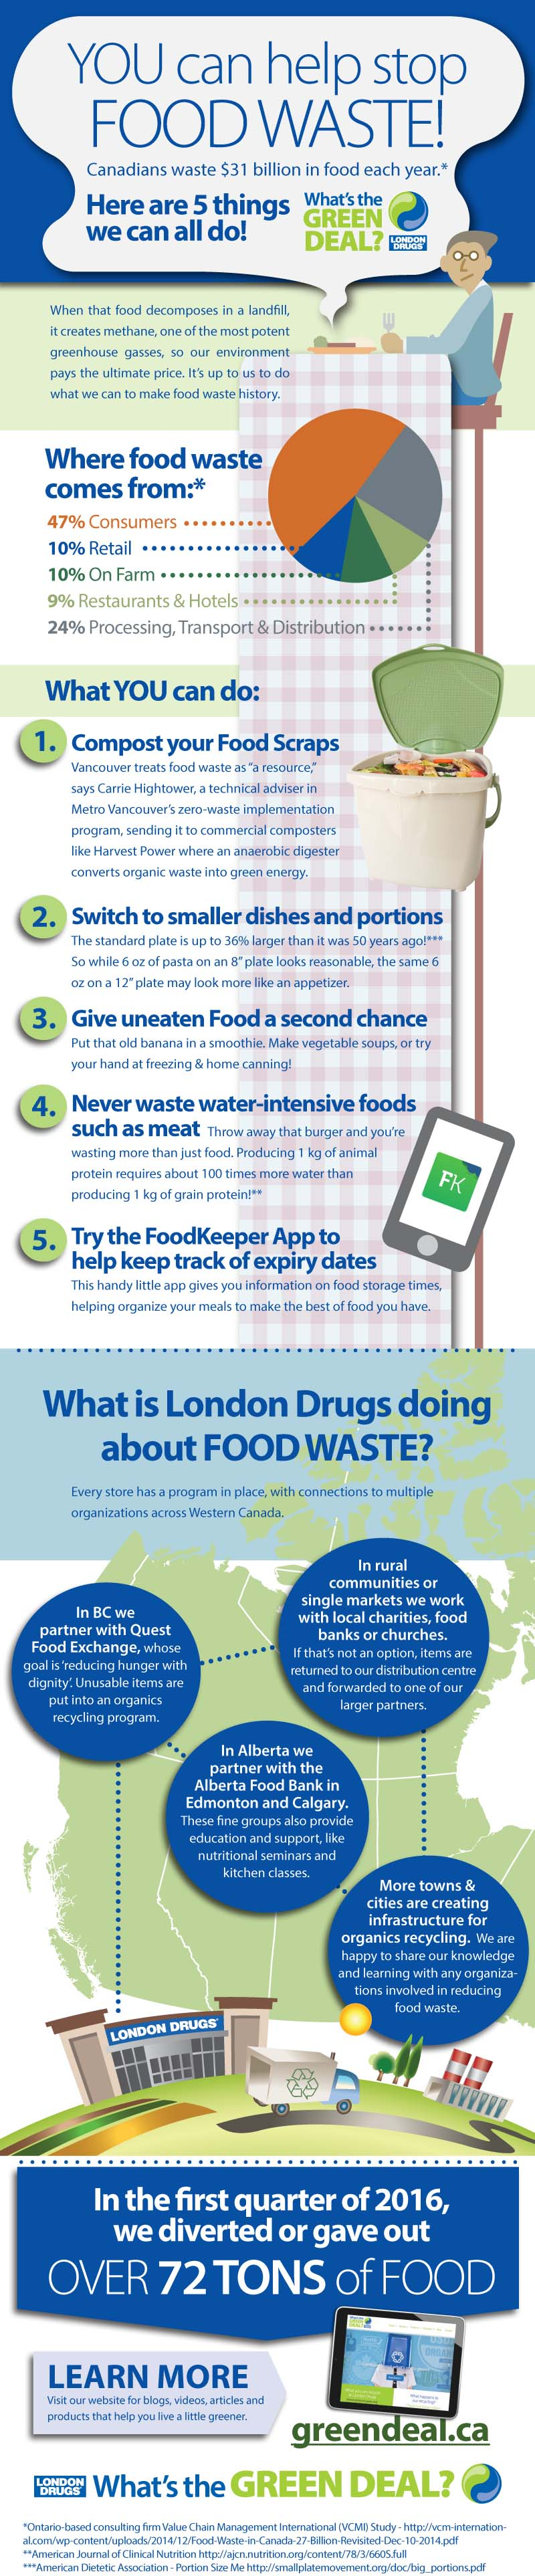 LD-FOOD-WASTE-GRAPHIC-2016